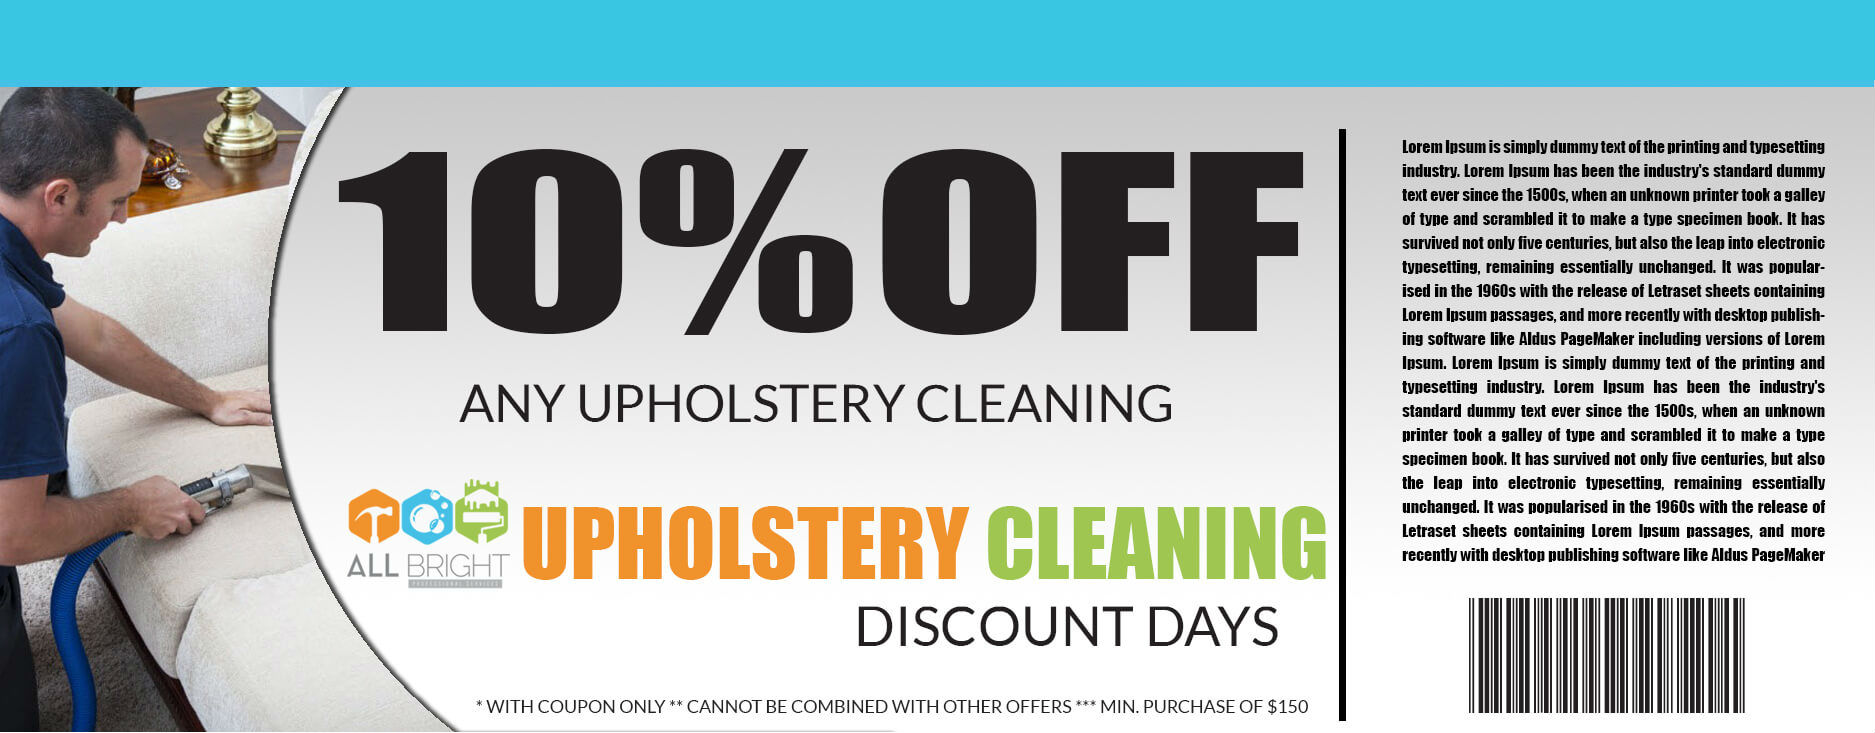 upholstery-cleaning-deal